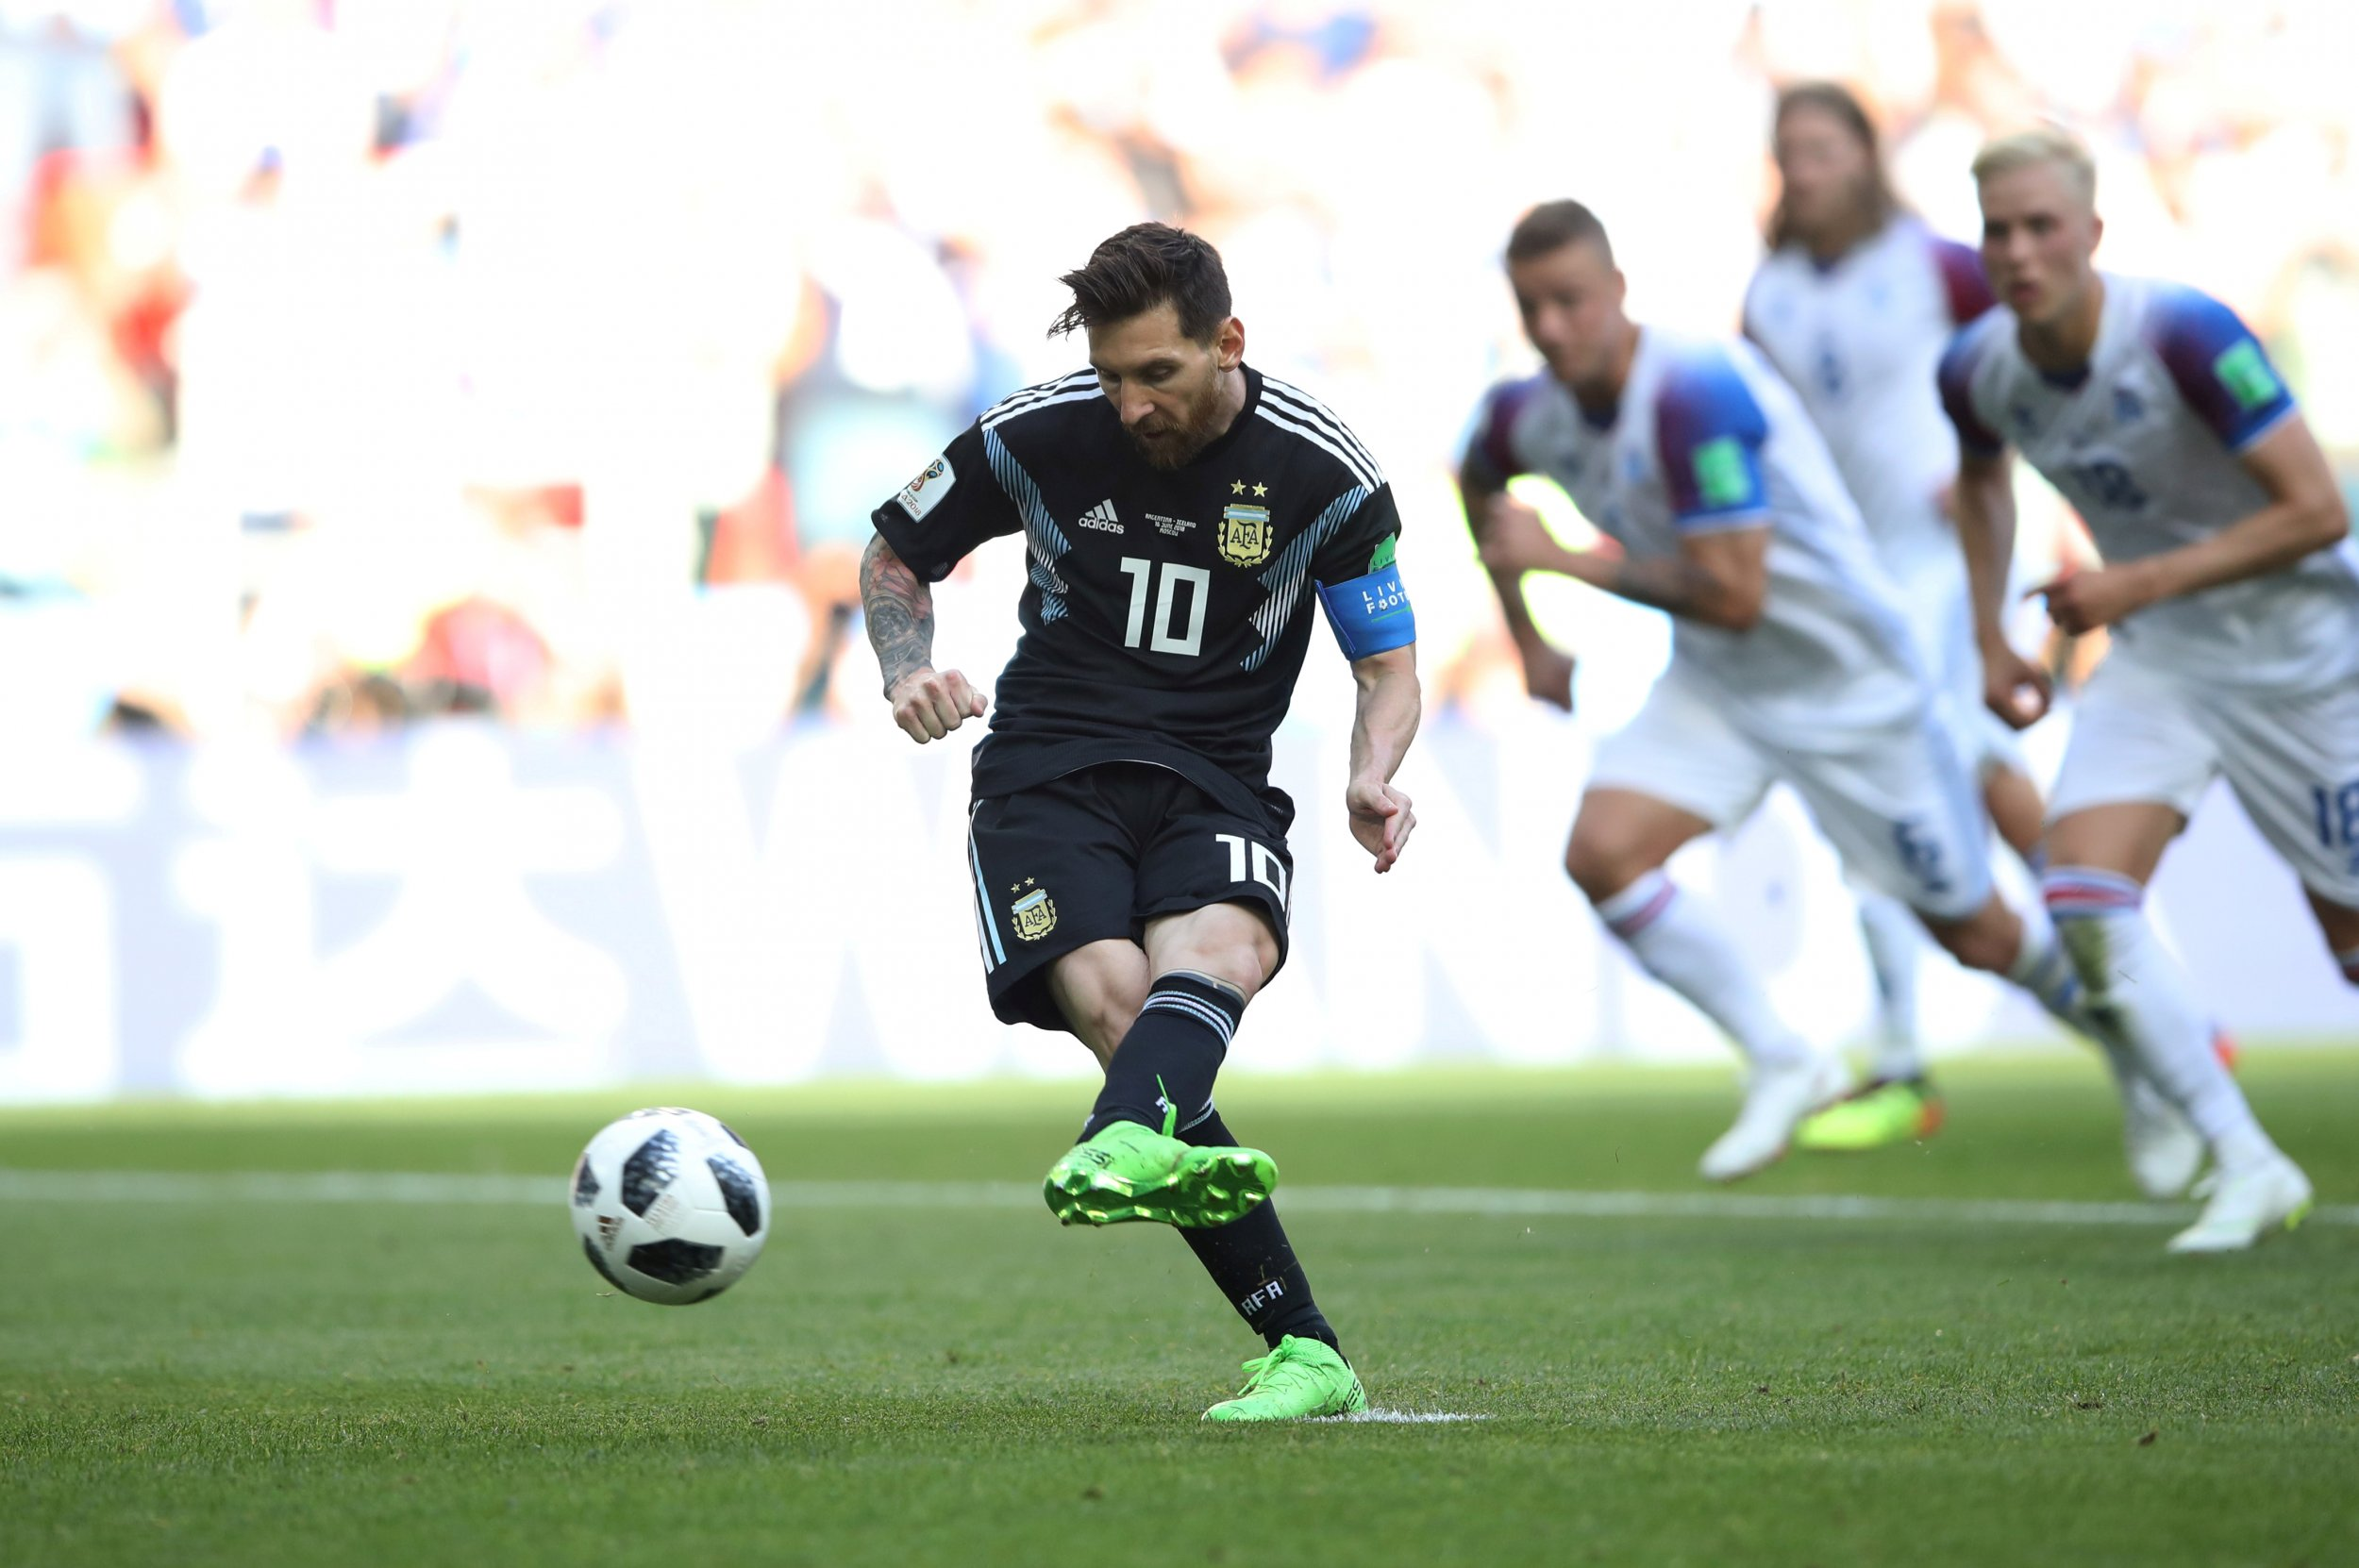 Argentina's Lionel Messi misses a penalty kick against Iceland on June 16